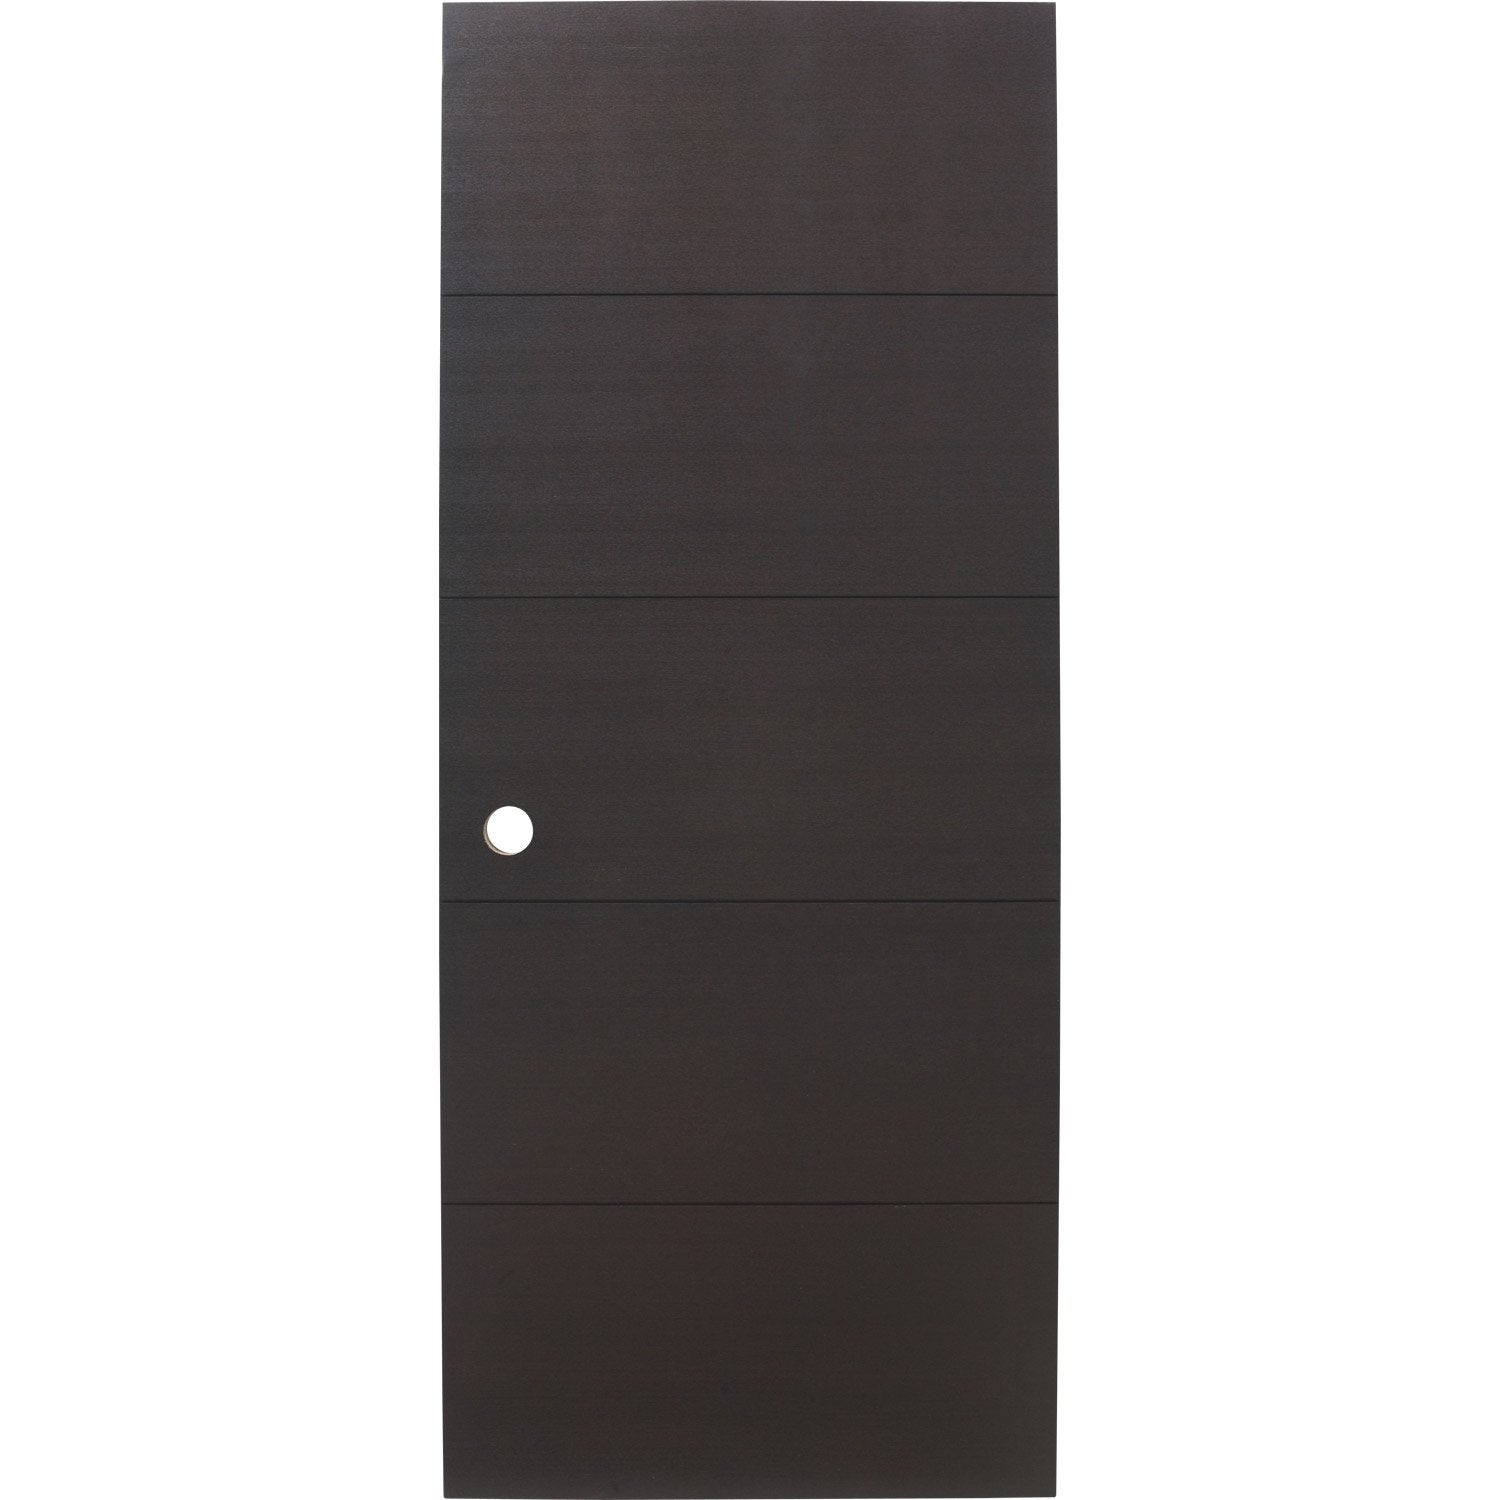 porte coulissante fr ne plaqu marron tokyo artens 204 x 83 cm leroy merlin. Black Bedroom Furniture Sets. Home Design Ideas